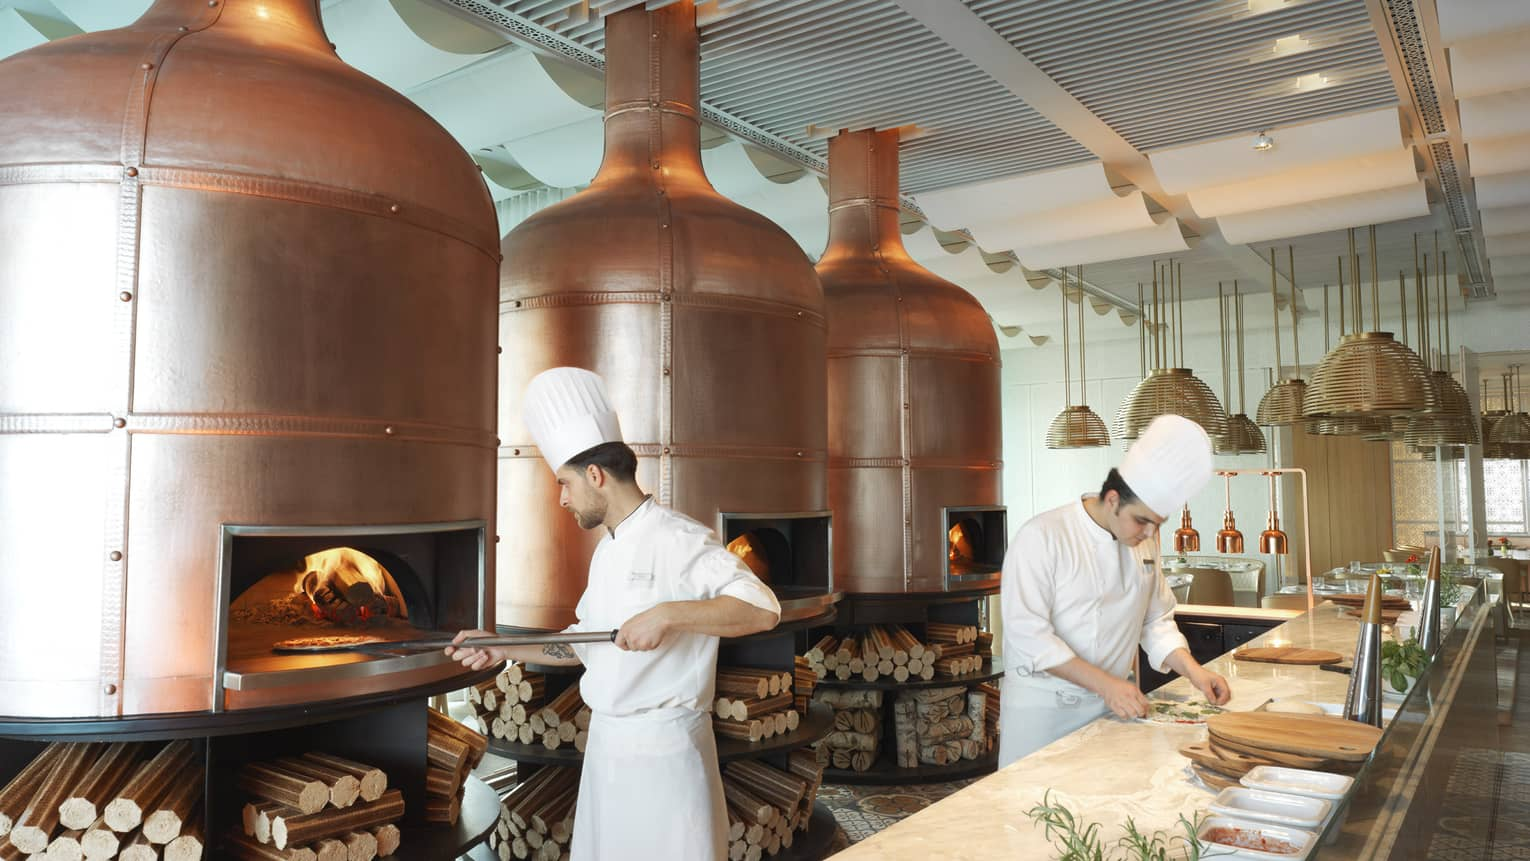 Chef in white uniform, holds wood paddle with pizza in front of three large brass wood-burning ovens